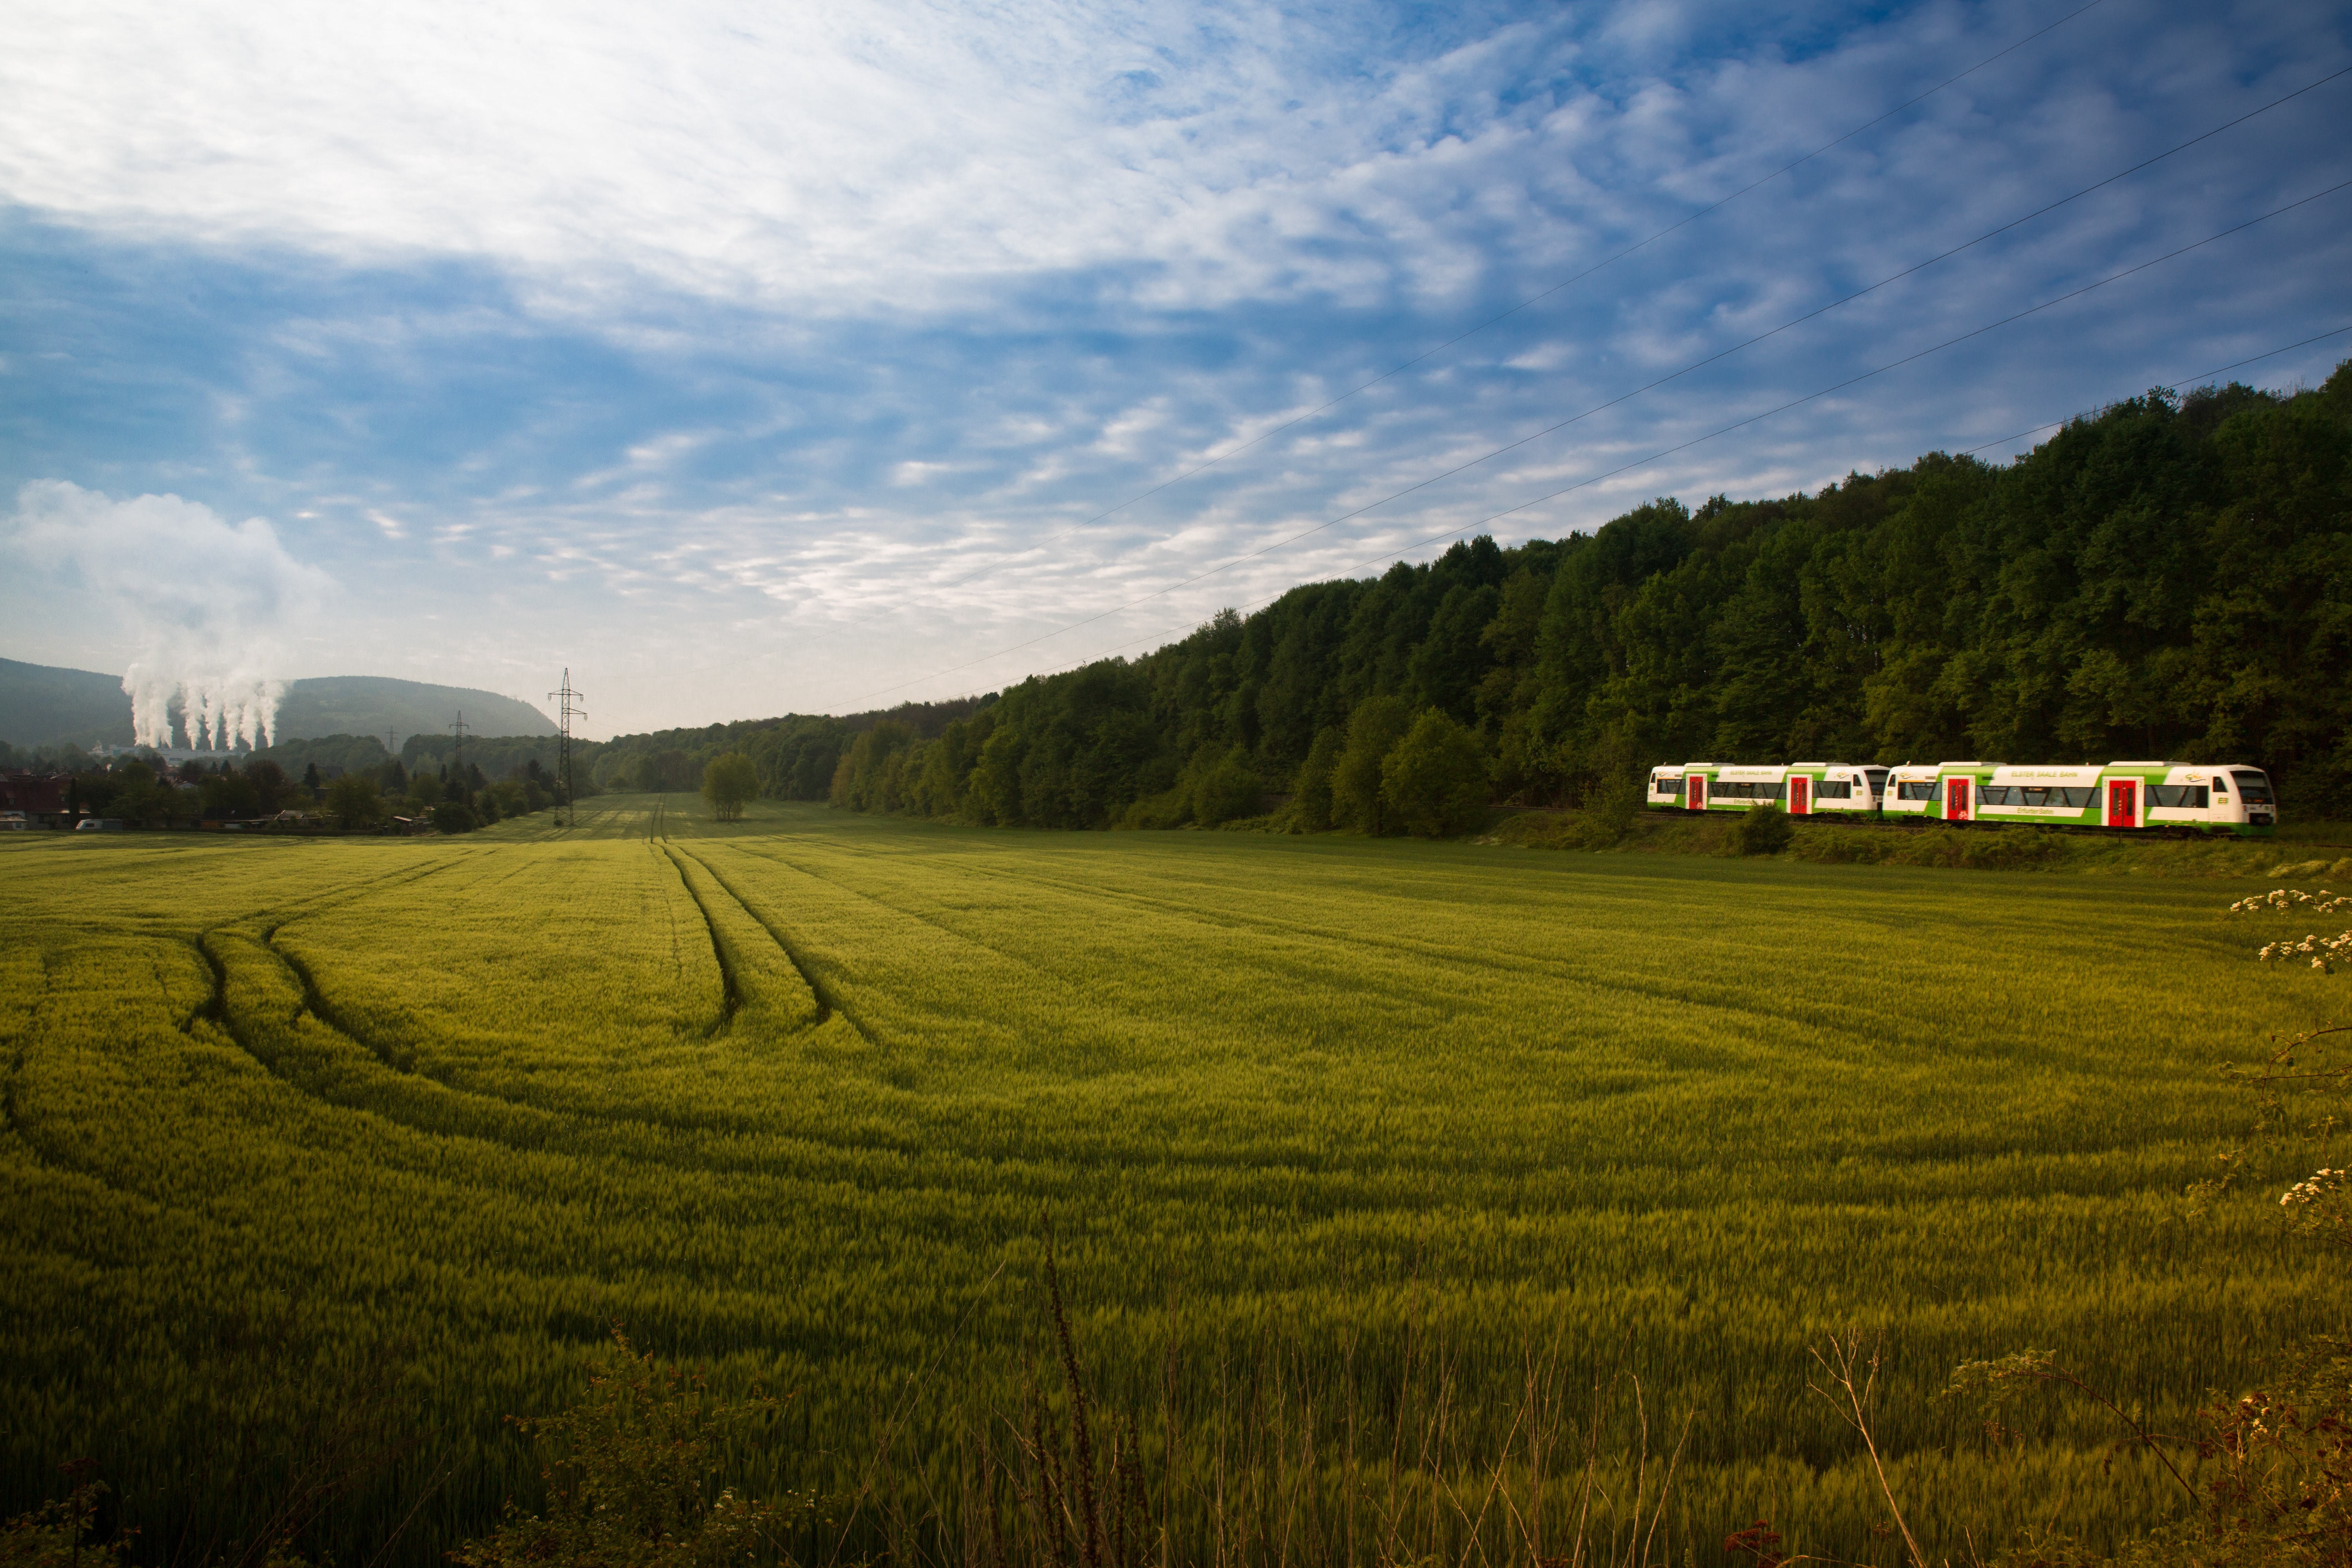 grassland surrounded with trees near train tracks with train